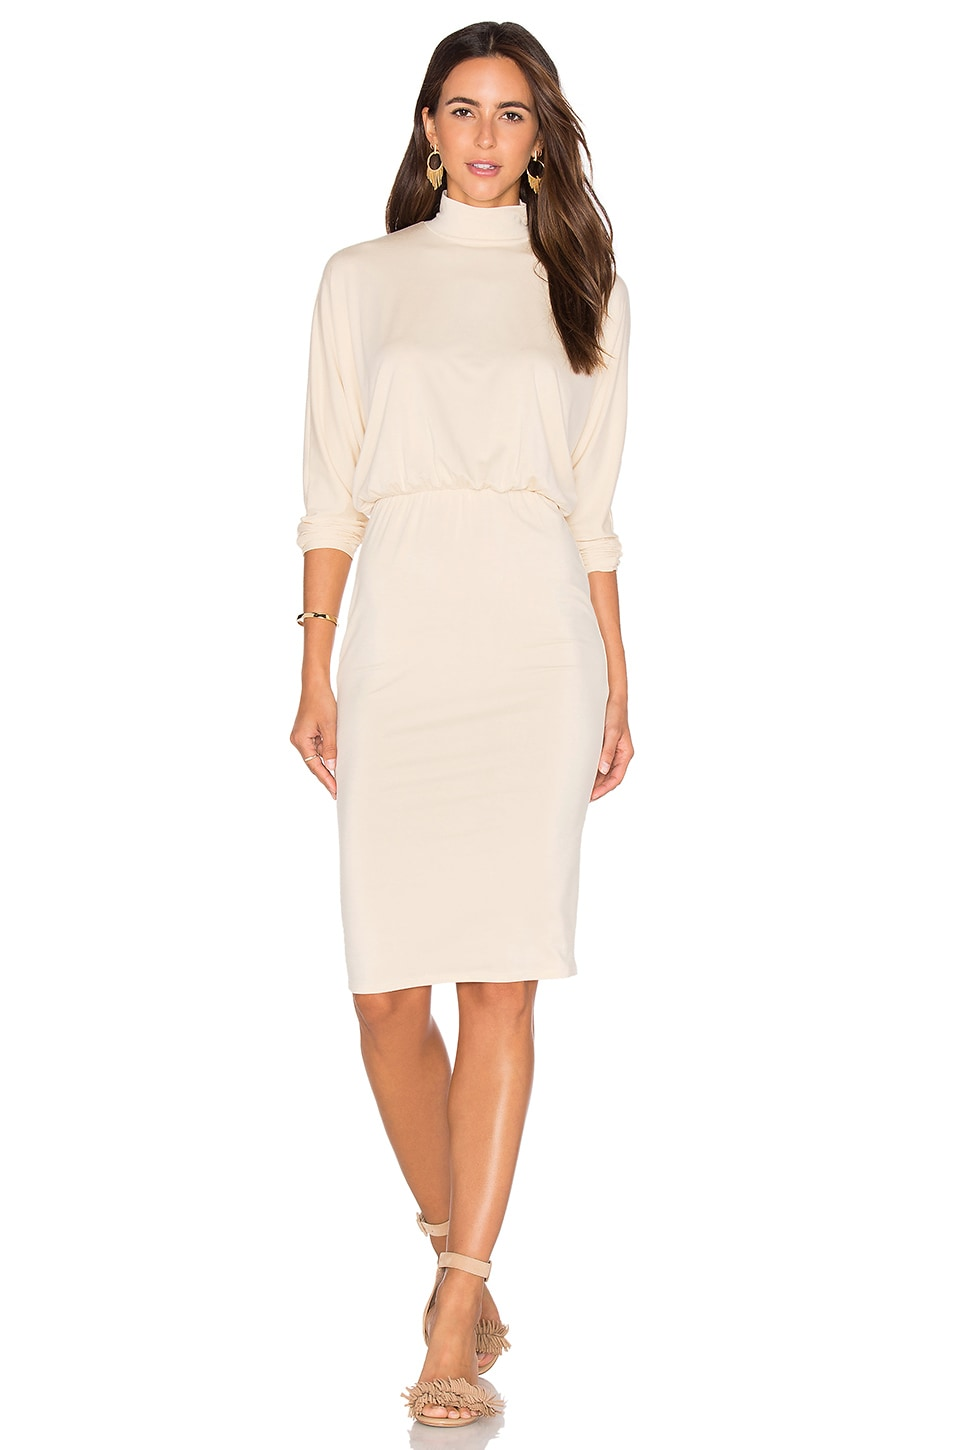 Rachel Pally Jonas Dress in Cream